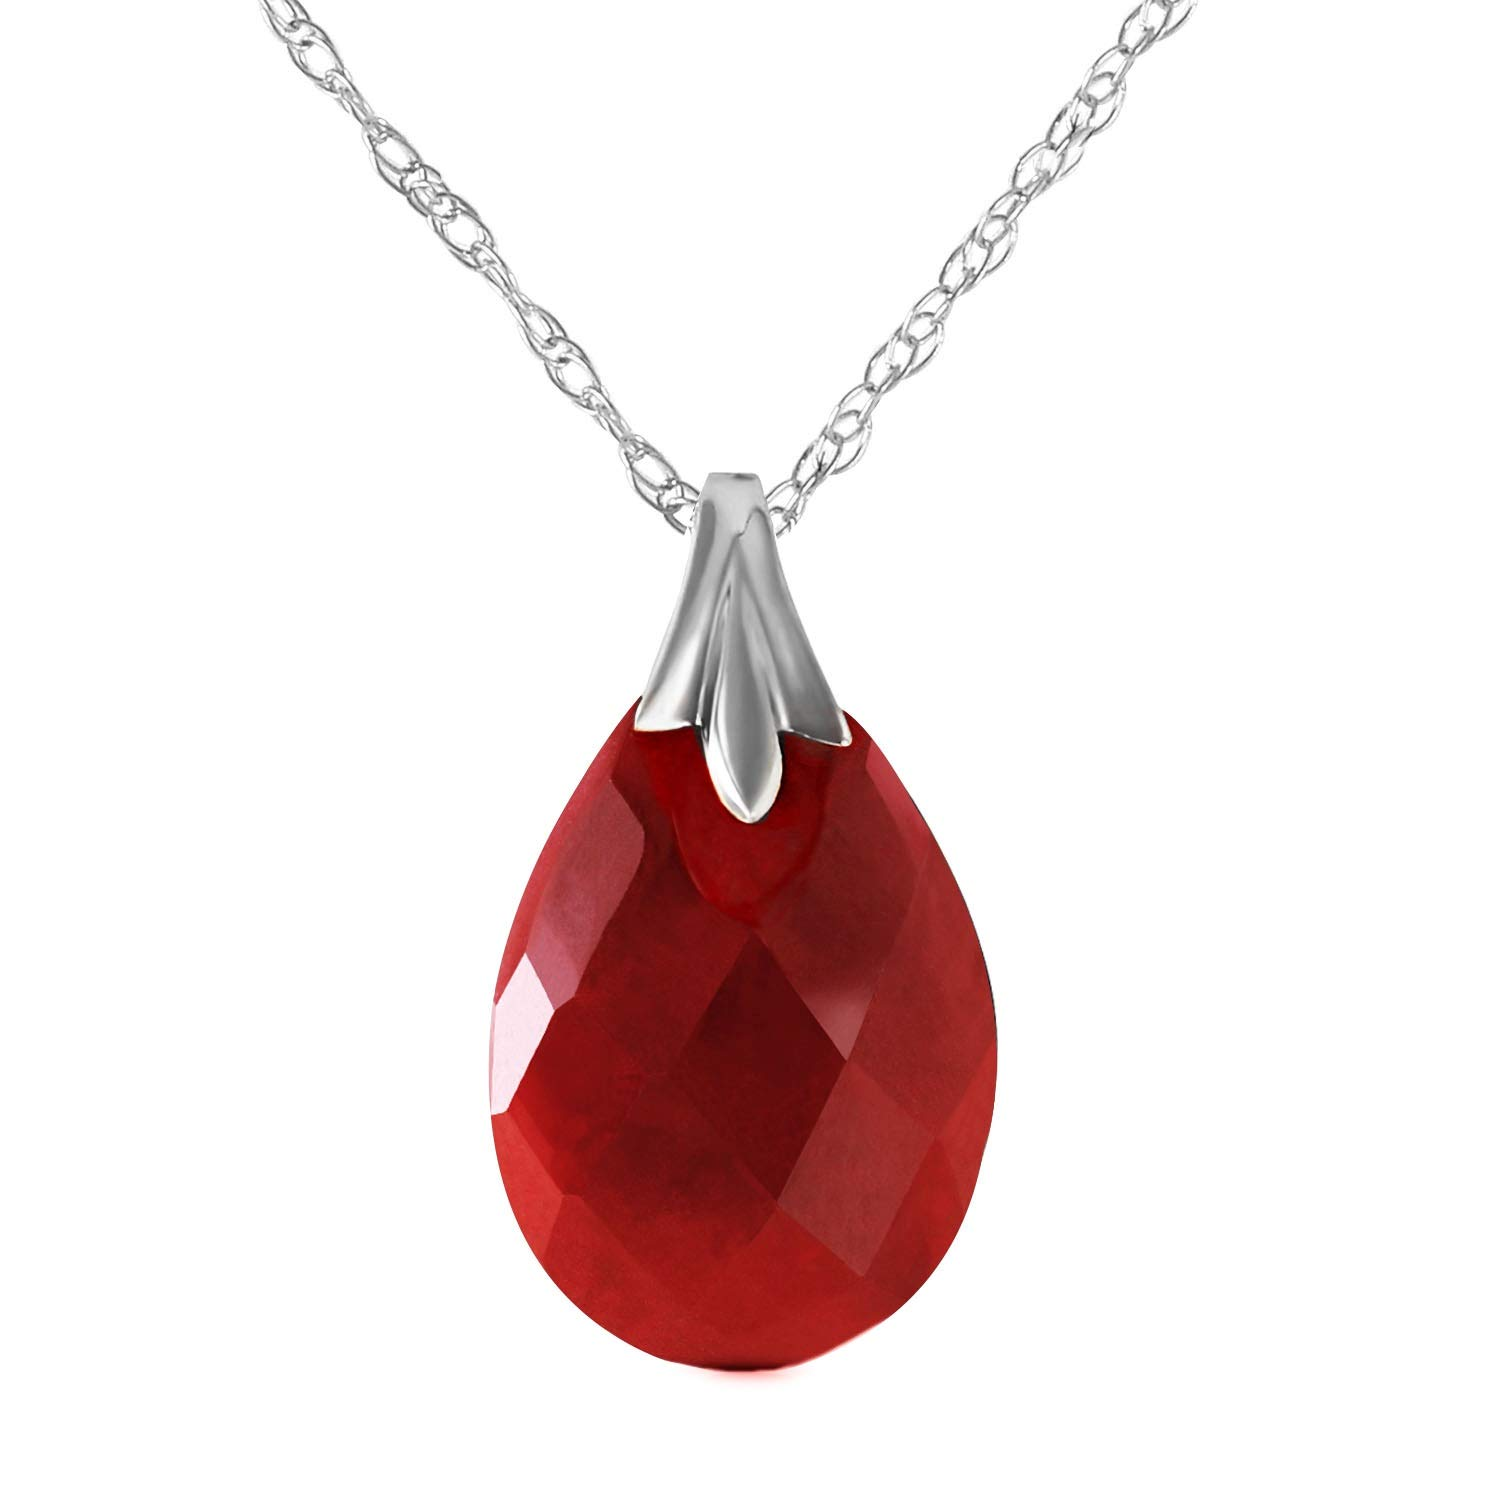 Galaxy Gold 14k Solid White Gold Pendant Necklace with Flat Pear Shape Briolette Cut Dyed Natural Ruby Pendant High Polished (18)